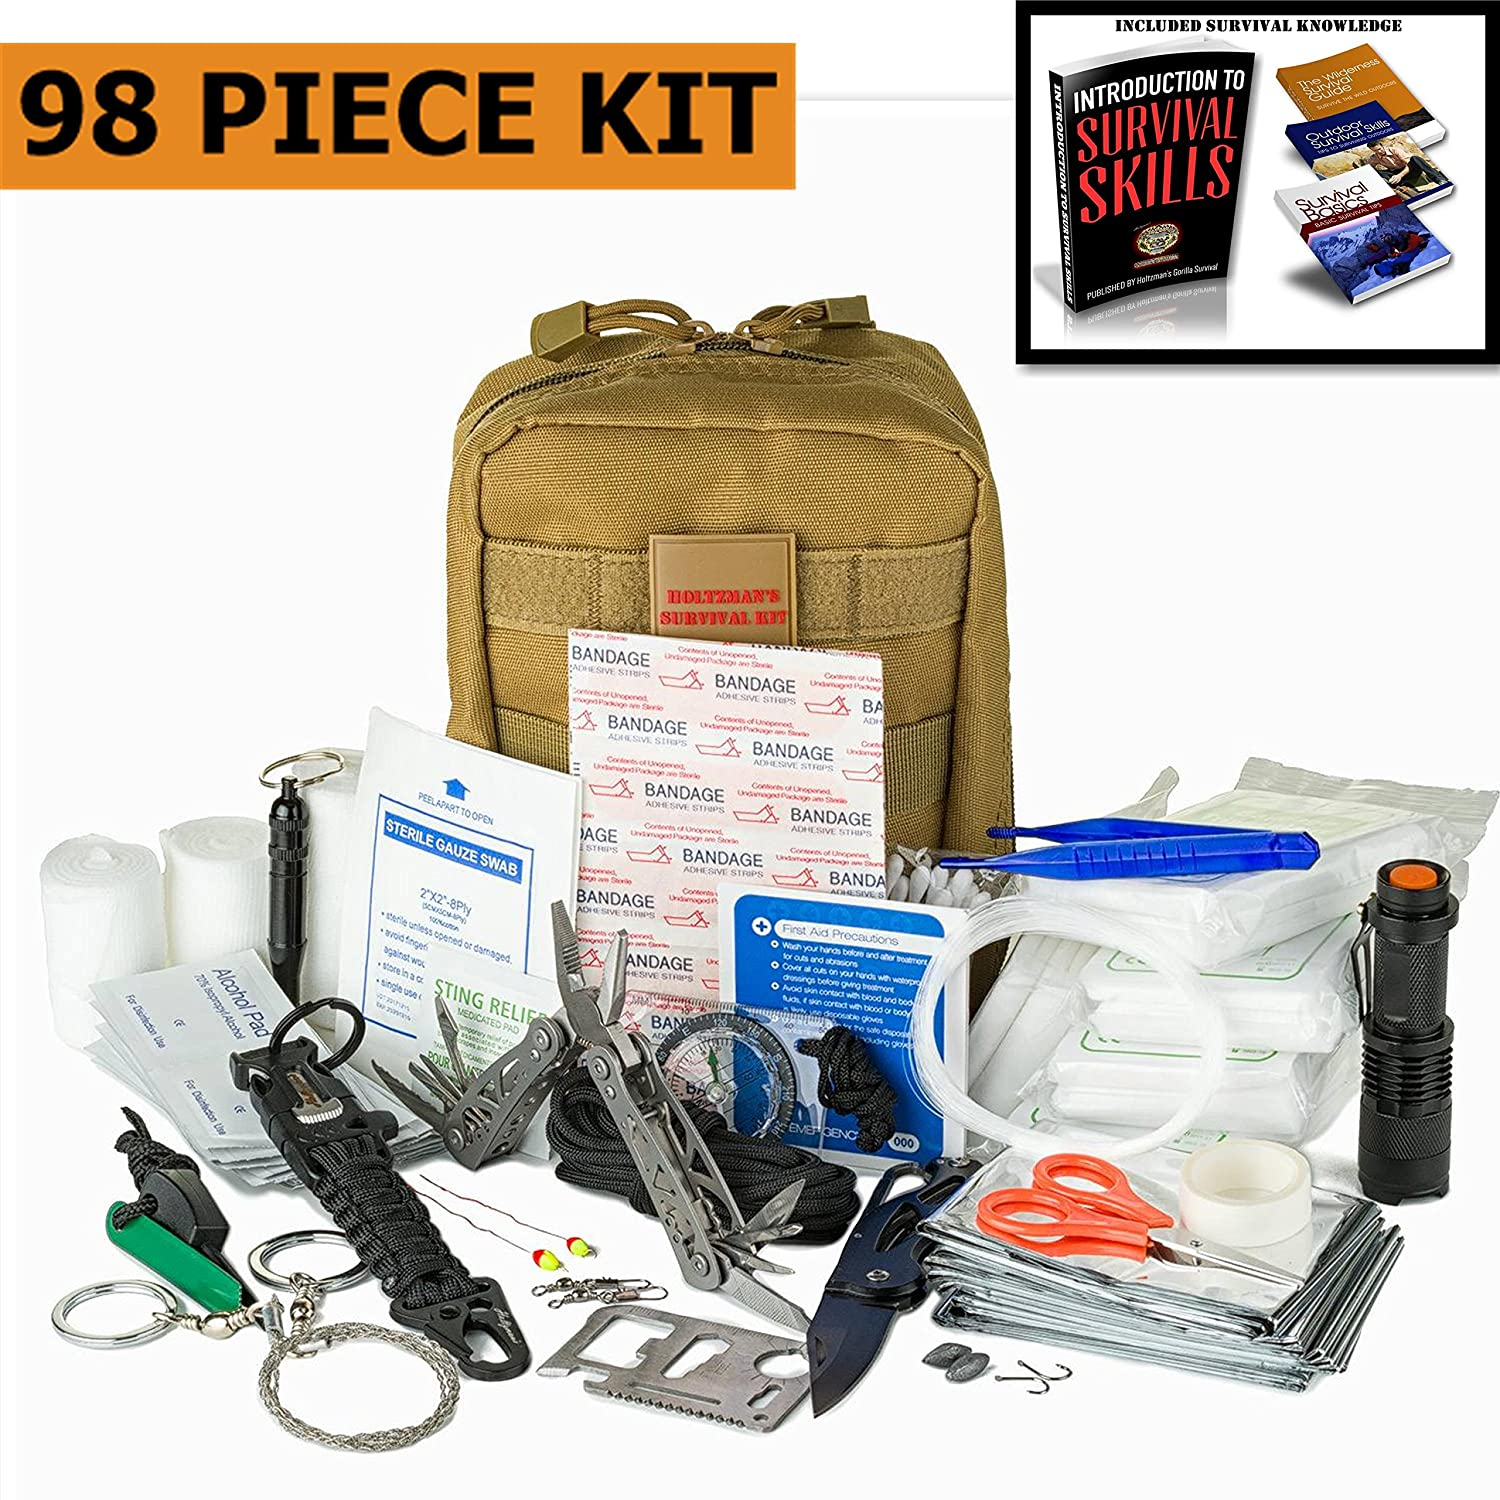 Emergency Survival Kit | Ultimate 98-in-1 Outdoor Multi-Tools for Camping, Hiking, Hunting & Fishing | First Aid Supplies | All Inclusive Survival Gear with Box for Campers & Preppers #1 BEST